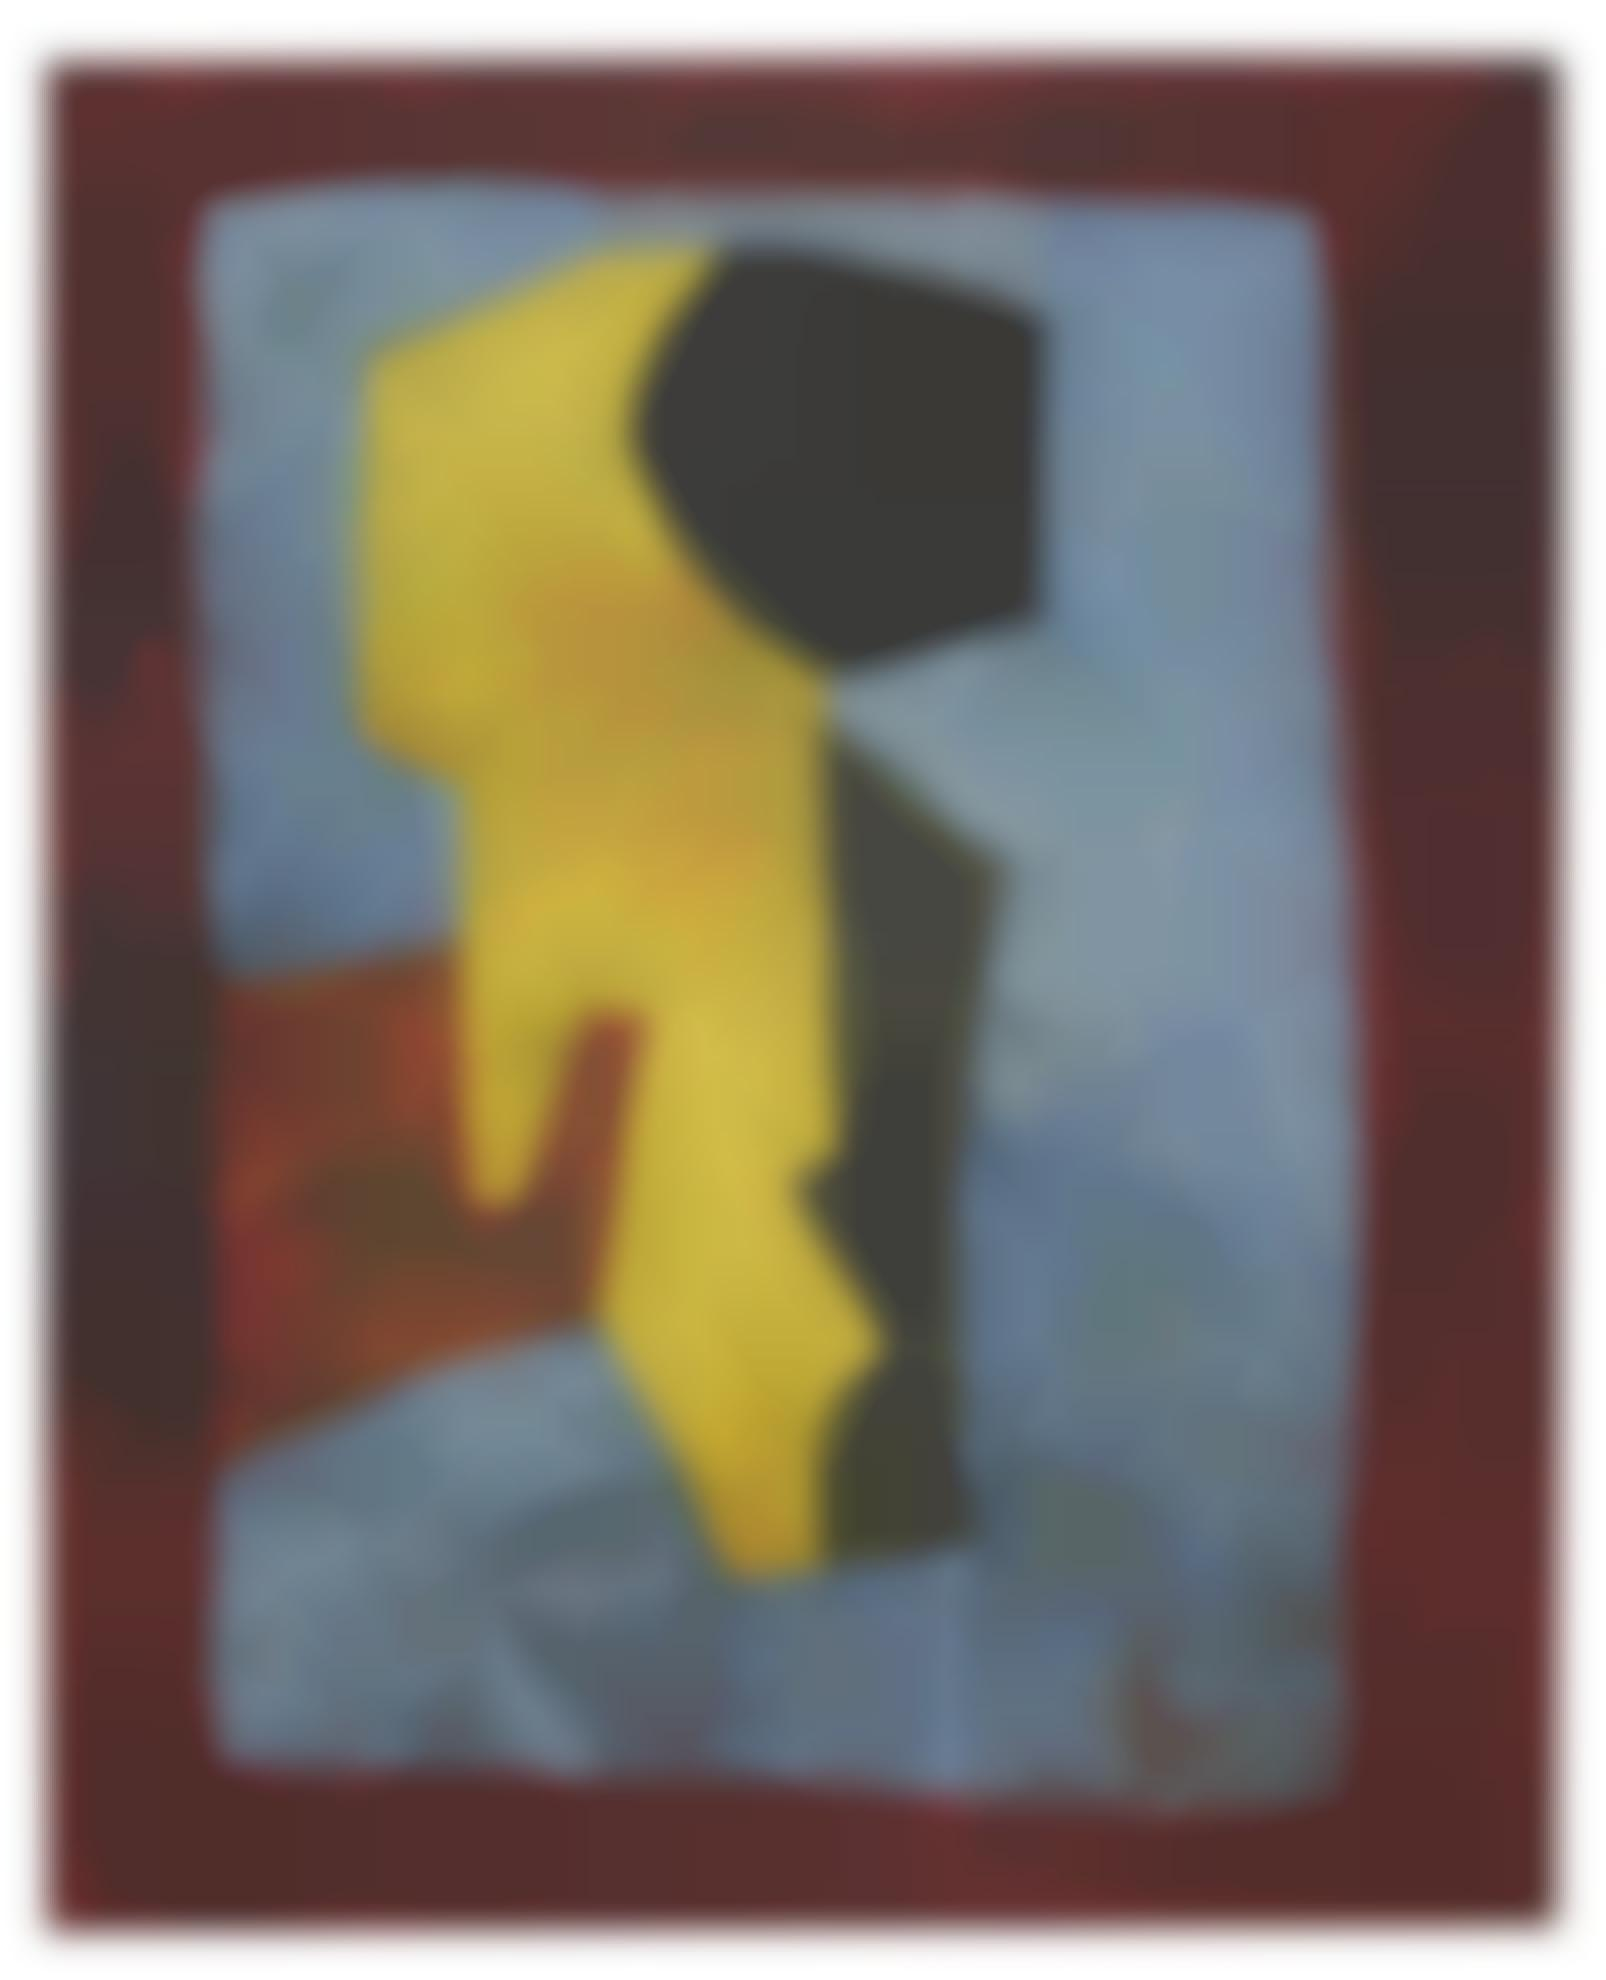 Serge Poliakoff-Composition Murale-1966